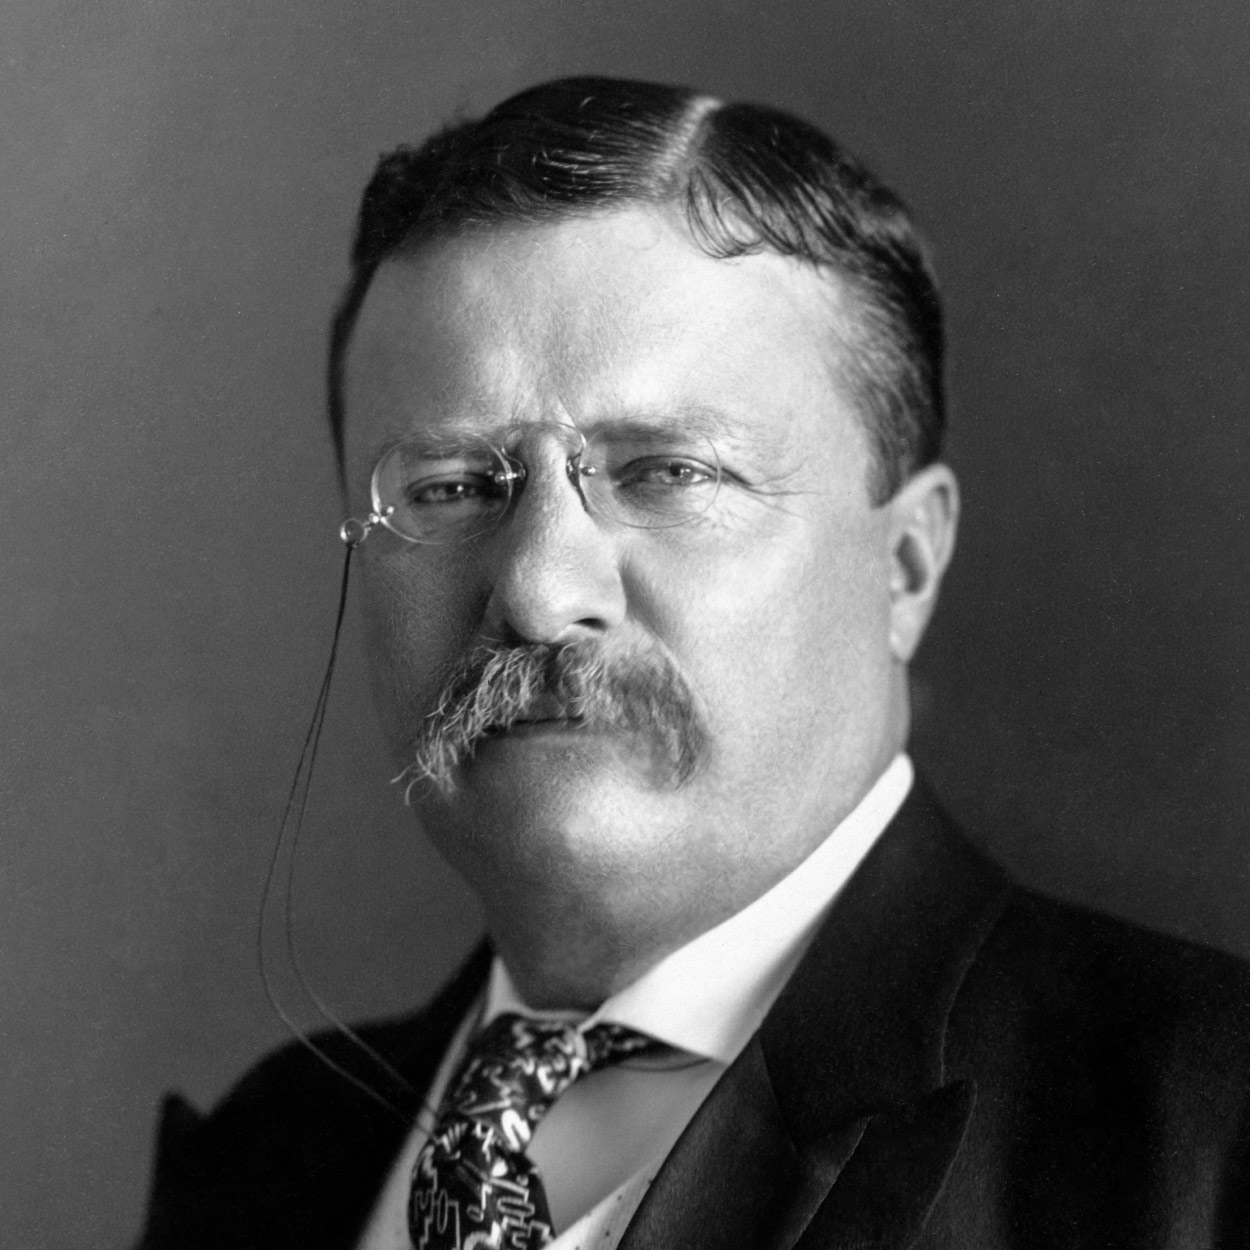 Portrait of Theodore Roosevelt, the 26th President of the United States